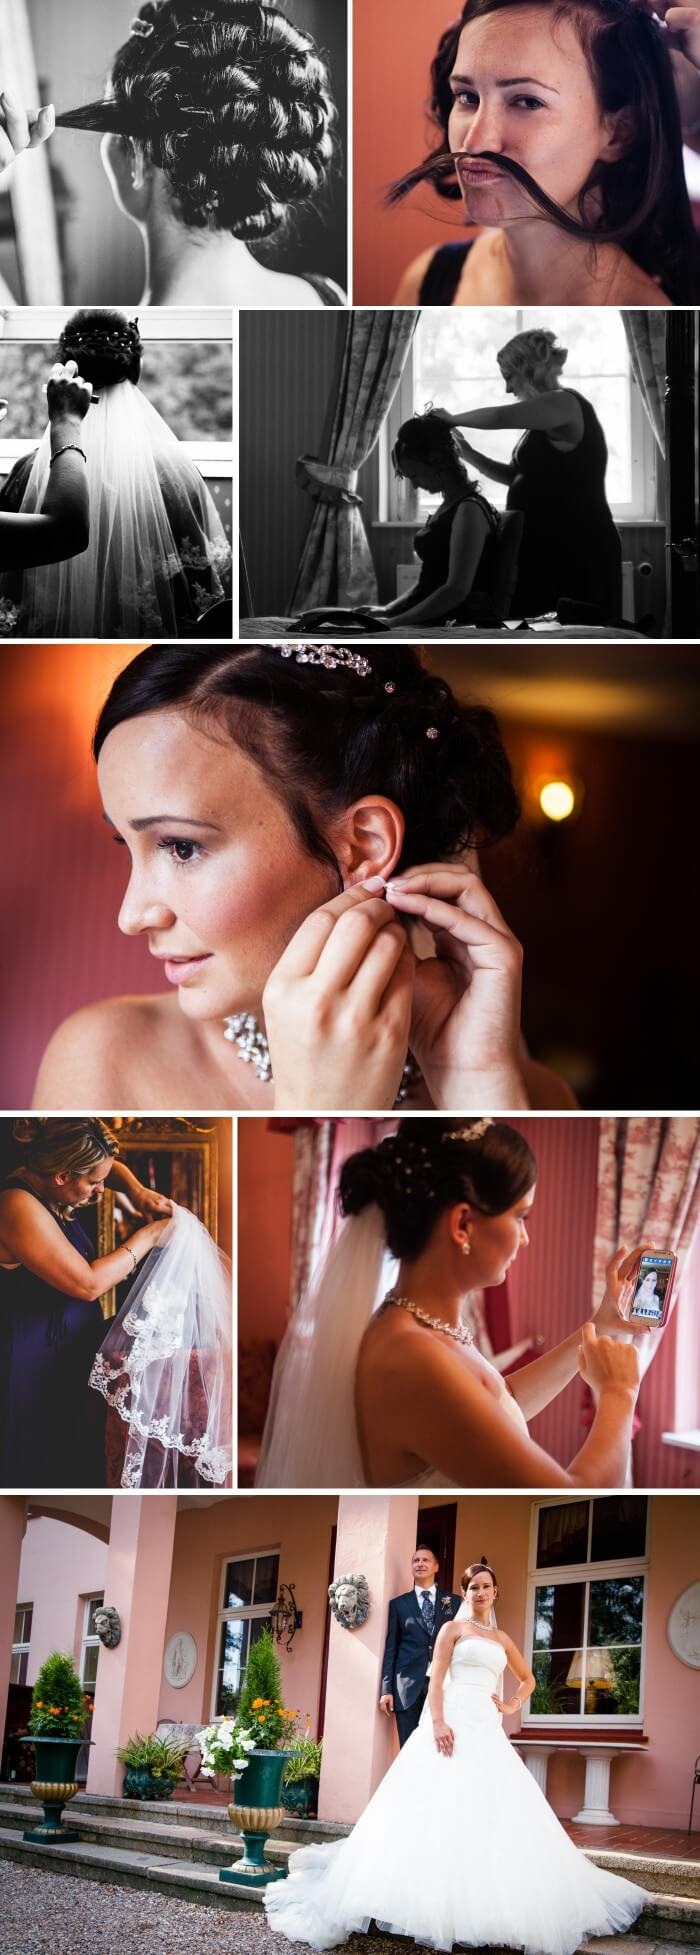 1632424766 654 English wedding in the castle 2 charming photo stories - English wedding in the castle   2 charming photo stories with many inspirations